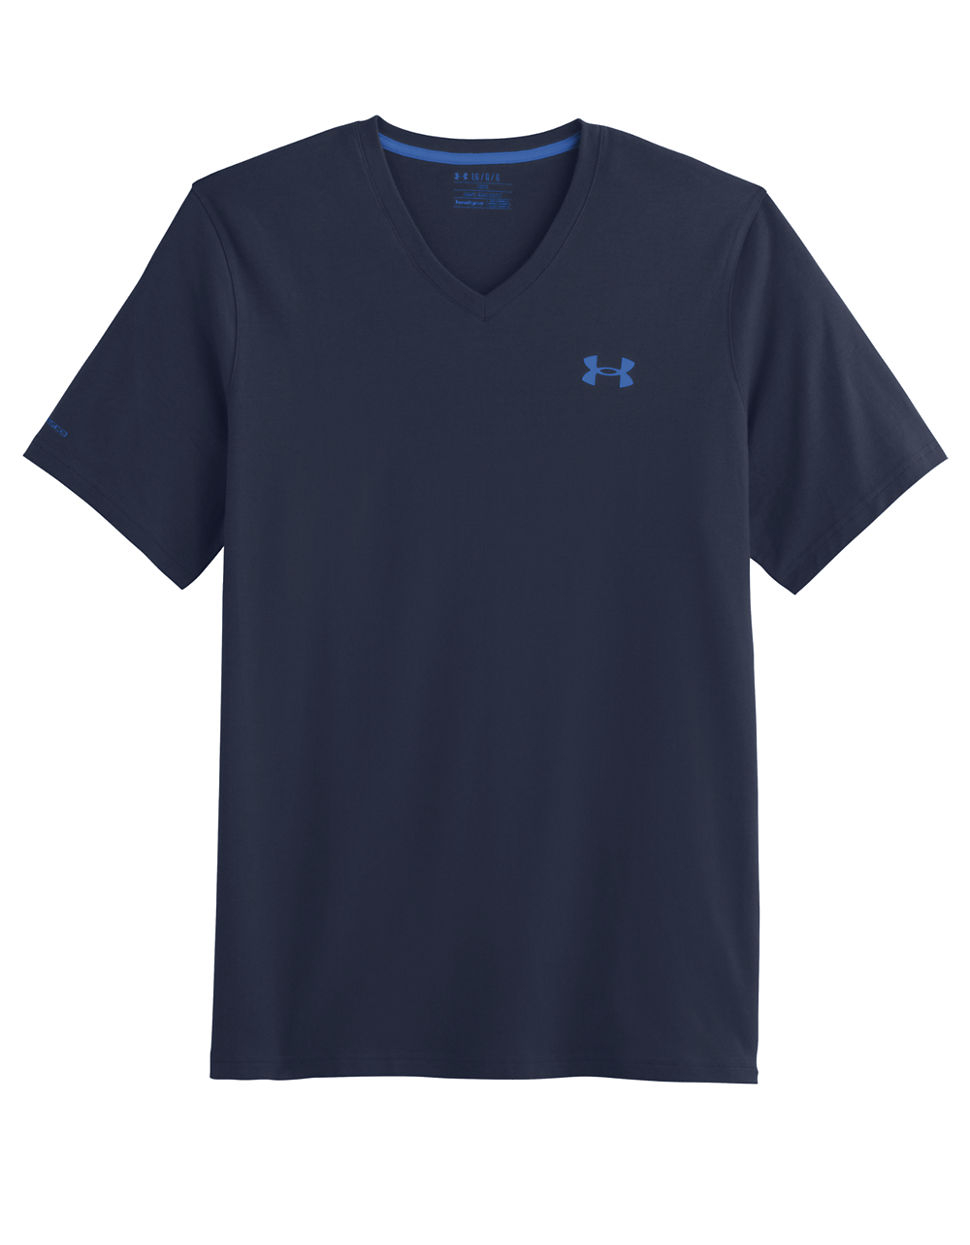 Under armour charged cotton t shirt in blue for men lyst for Under armour charged cotton shirts mens